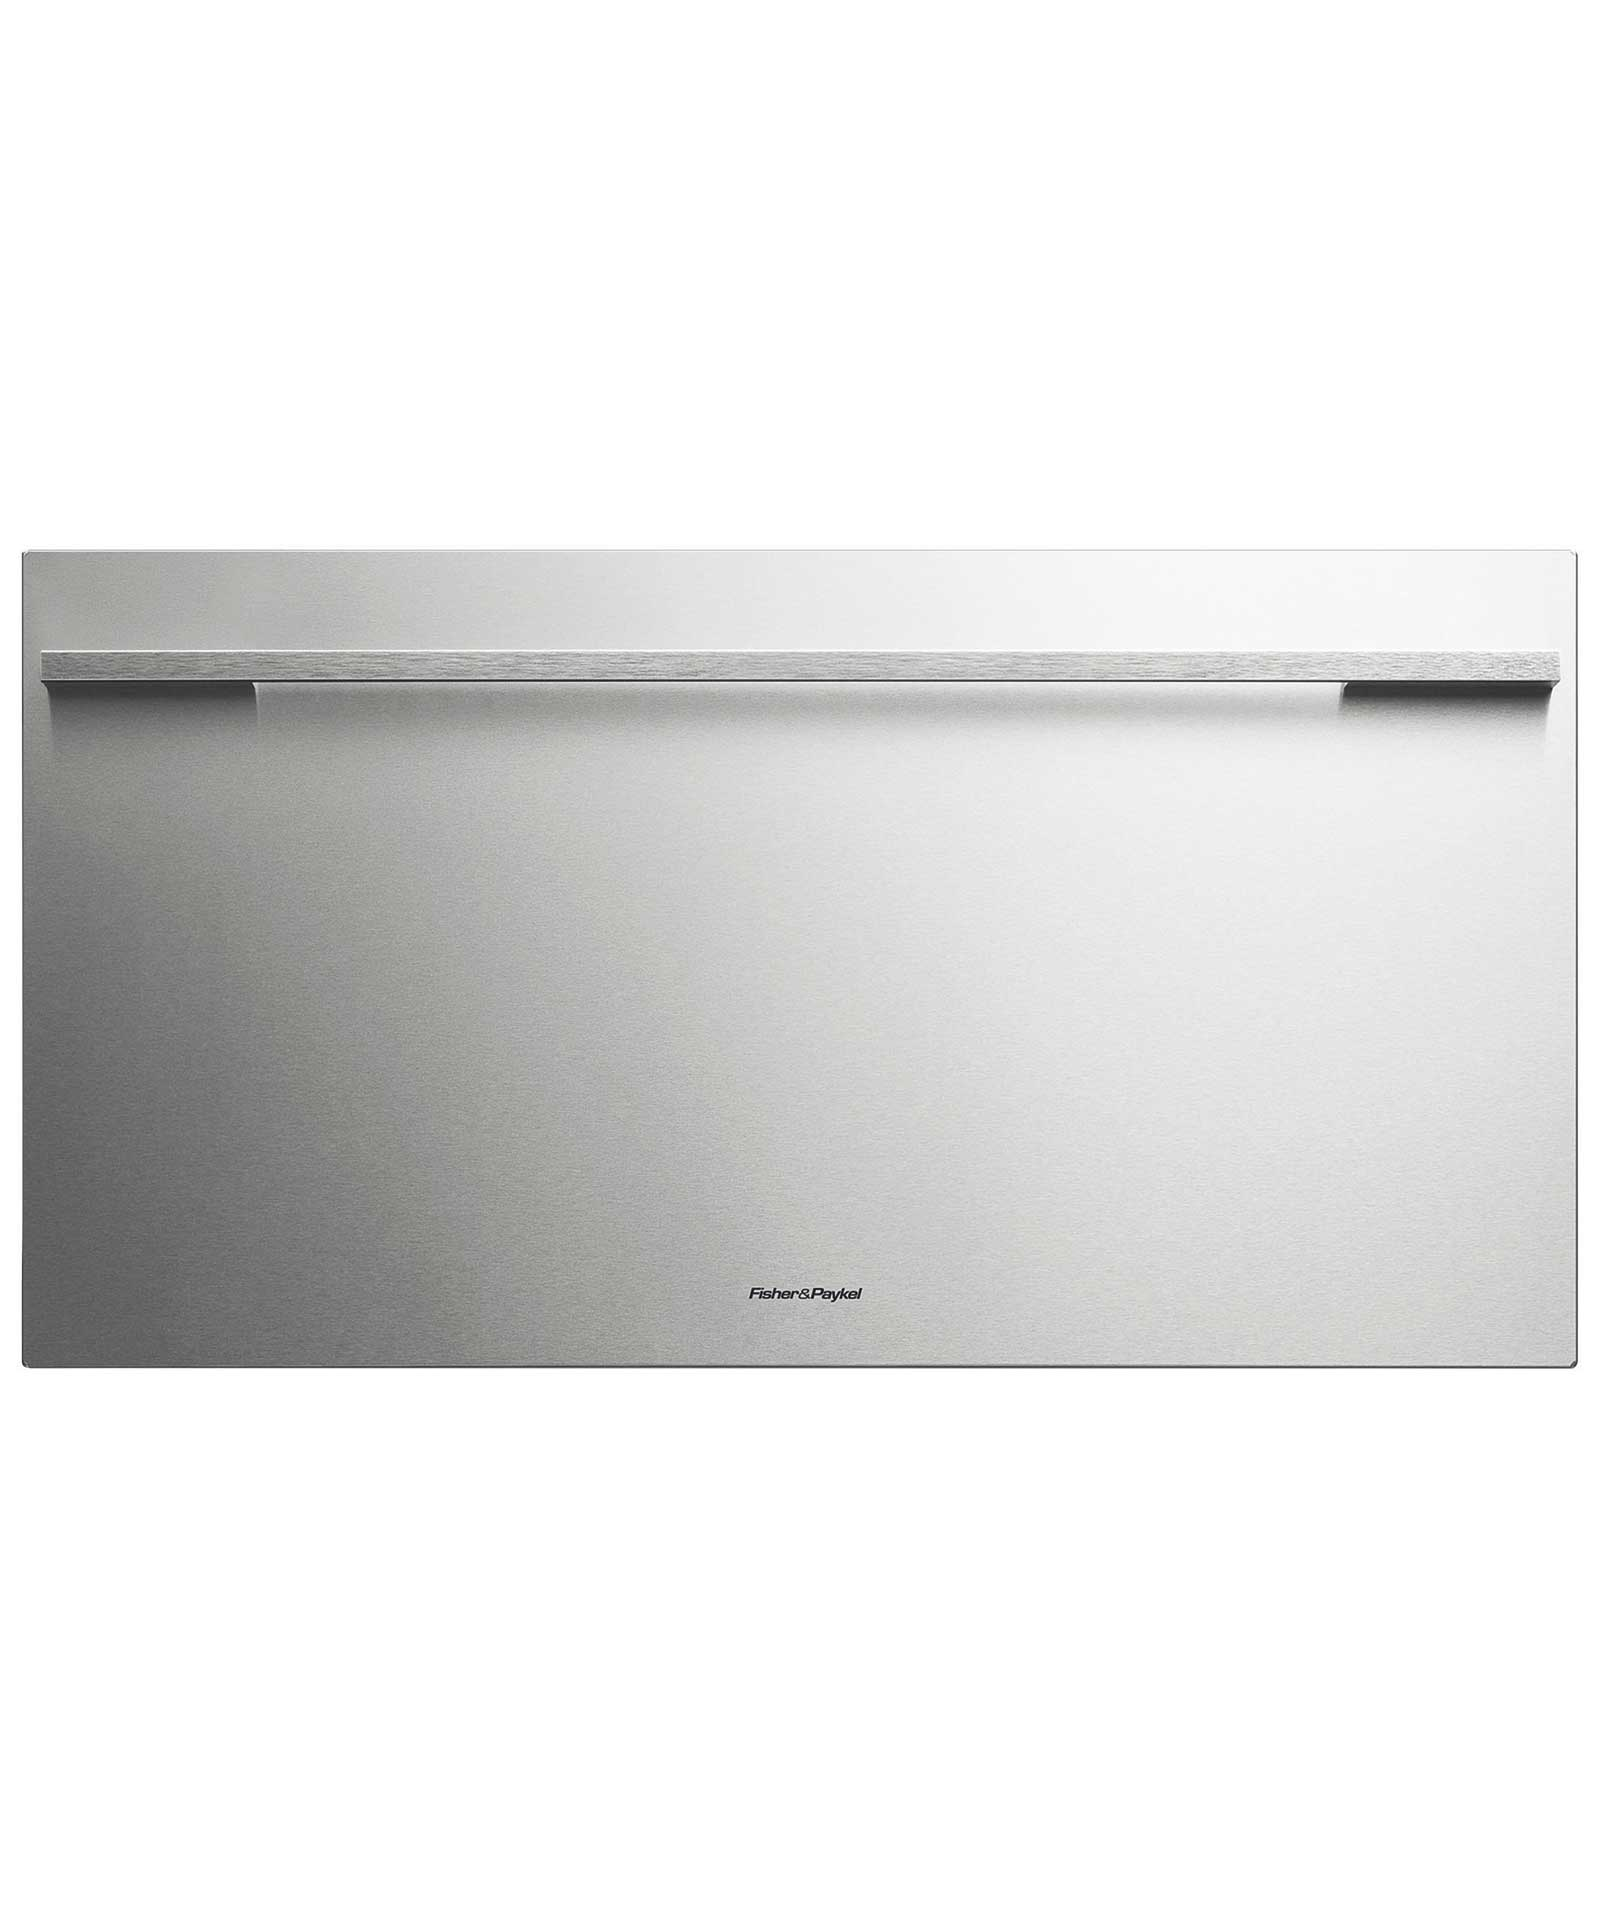 Rb90s64mkiw1 Cooldrawer Multi Temperature Drawer